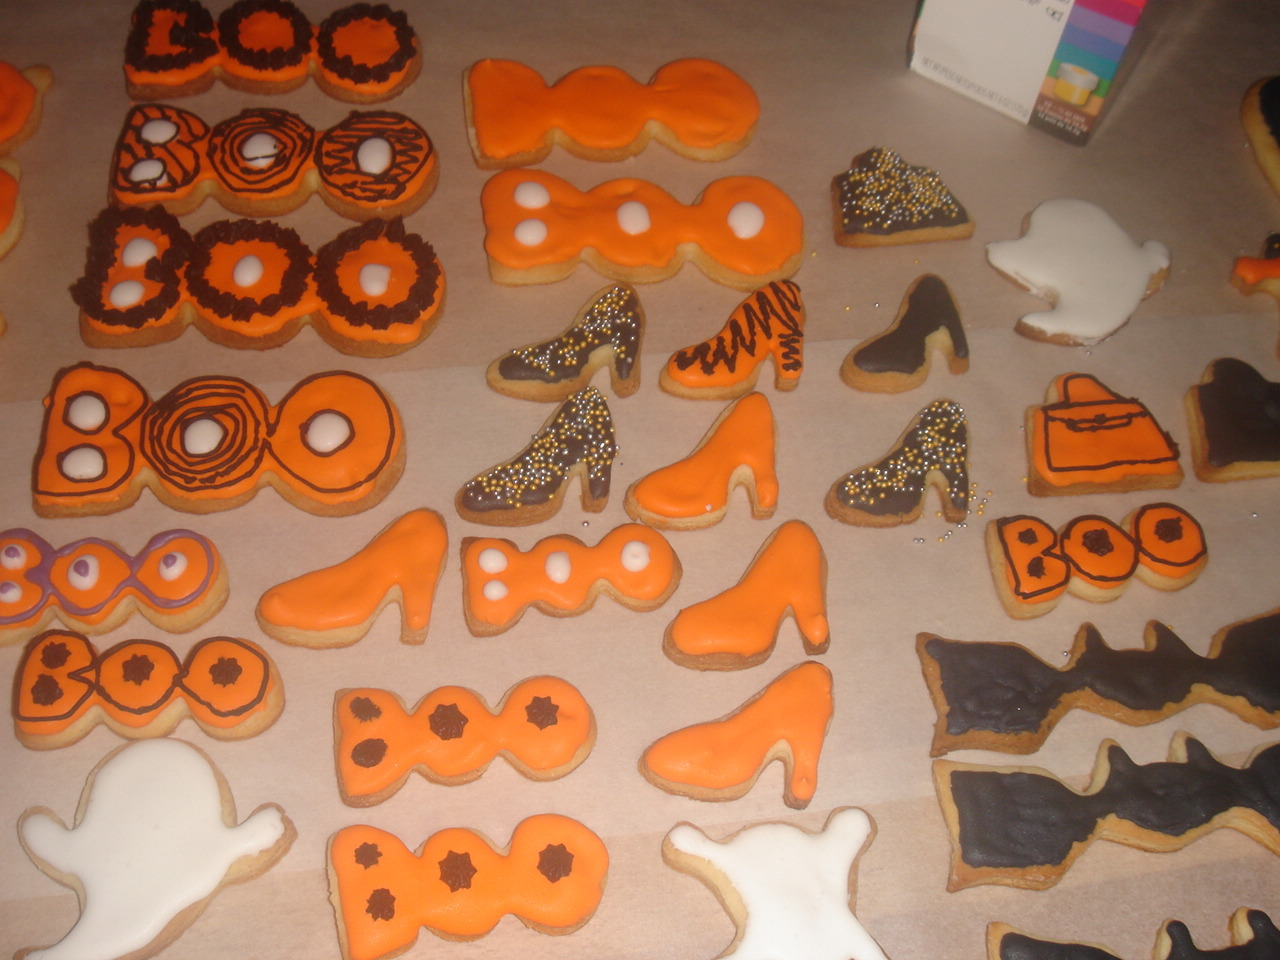 decorating the cookies / Kekse dekorieren